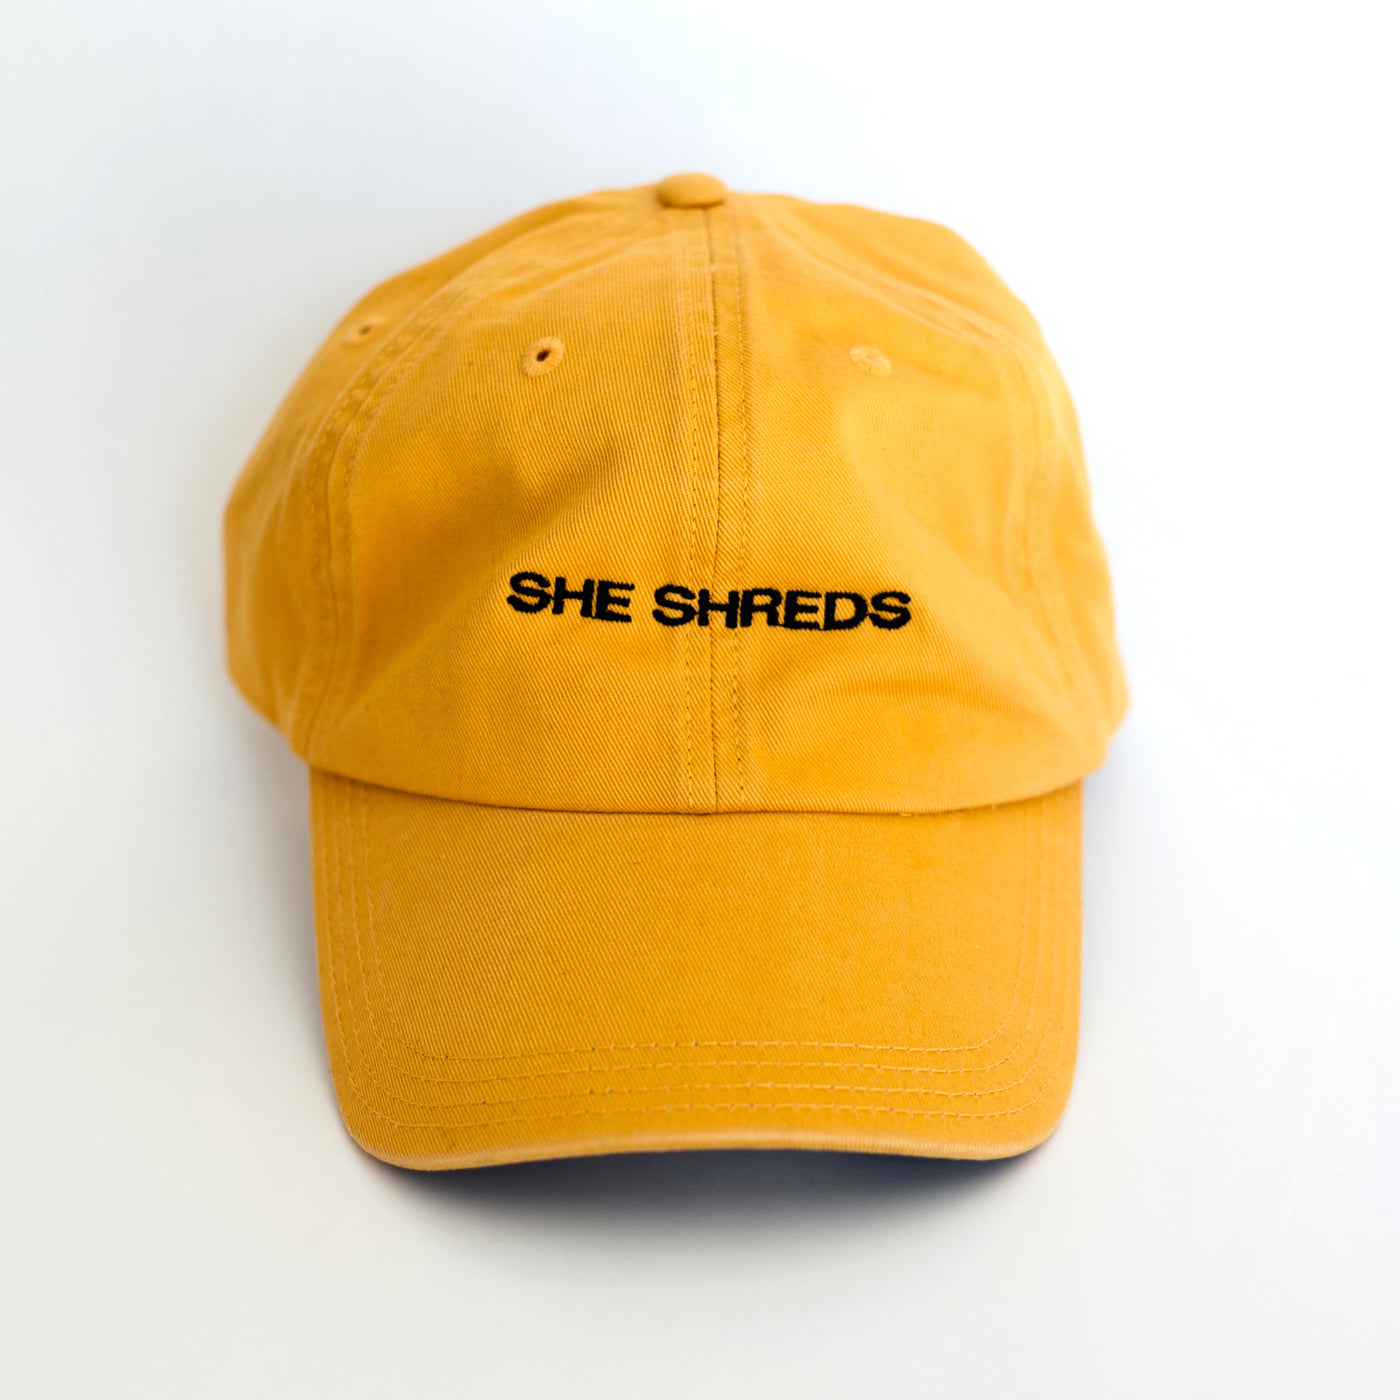 She Shreds Hat - Limited Edition Gold (SOLD OUT)